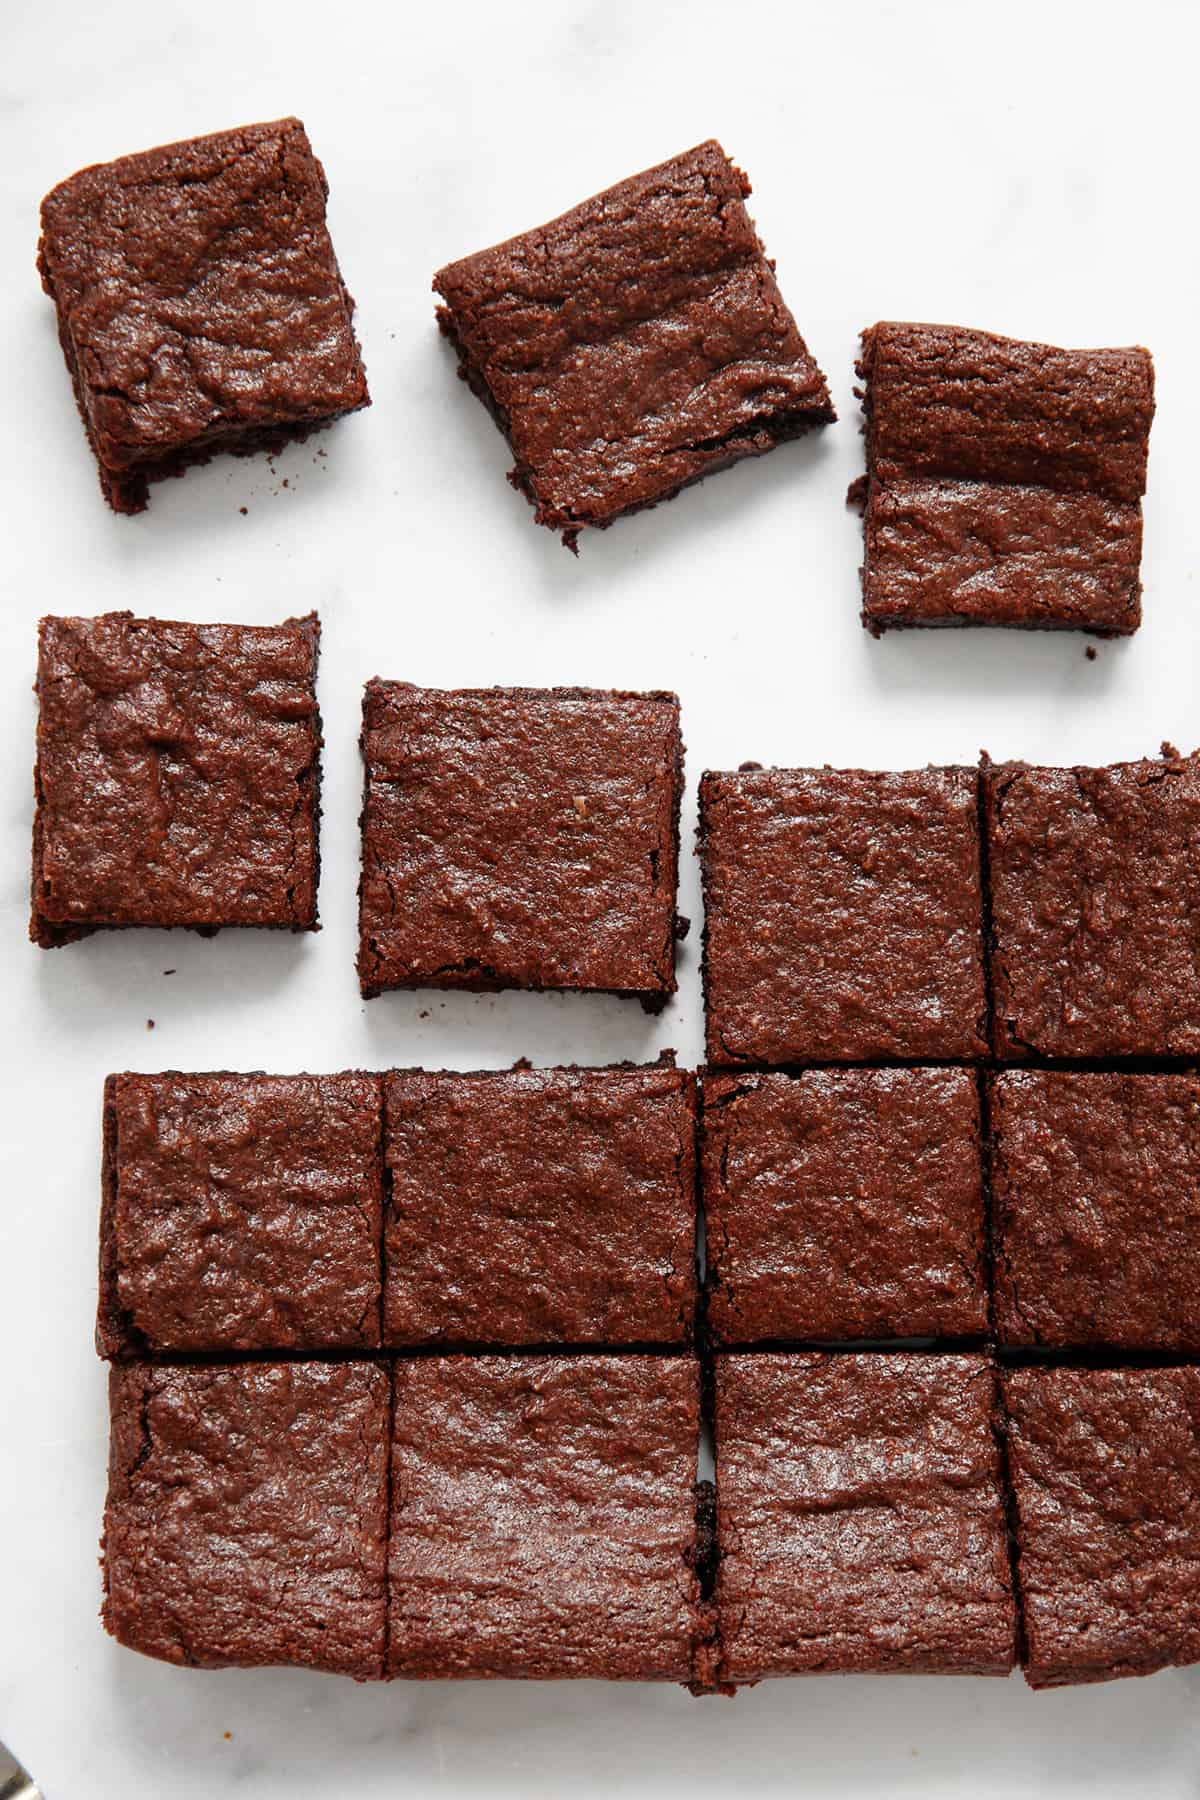 Neat squares of paleo brownies